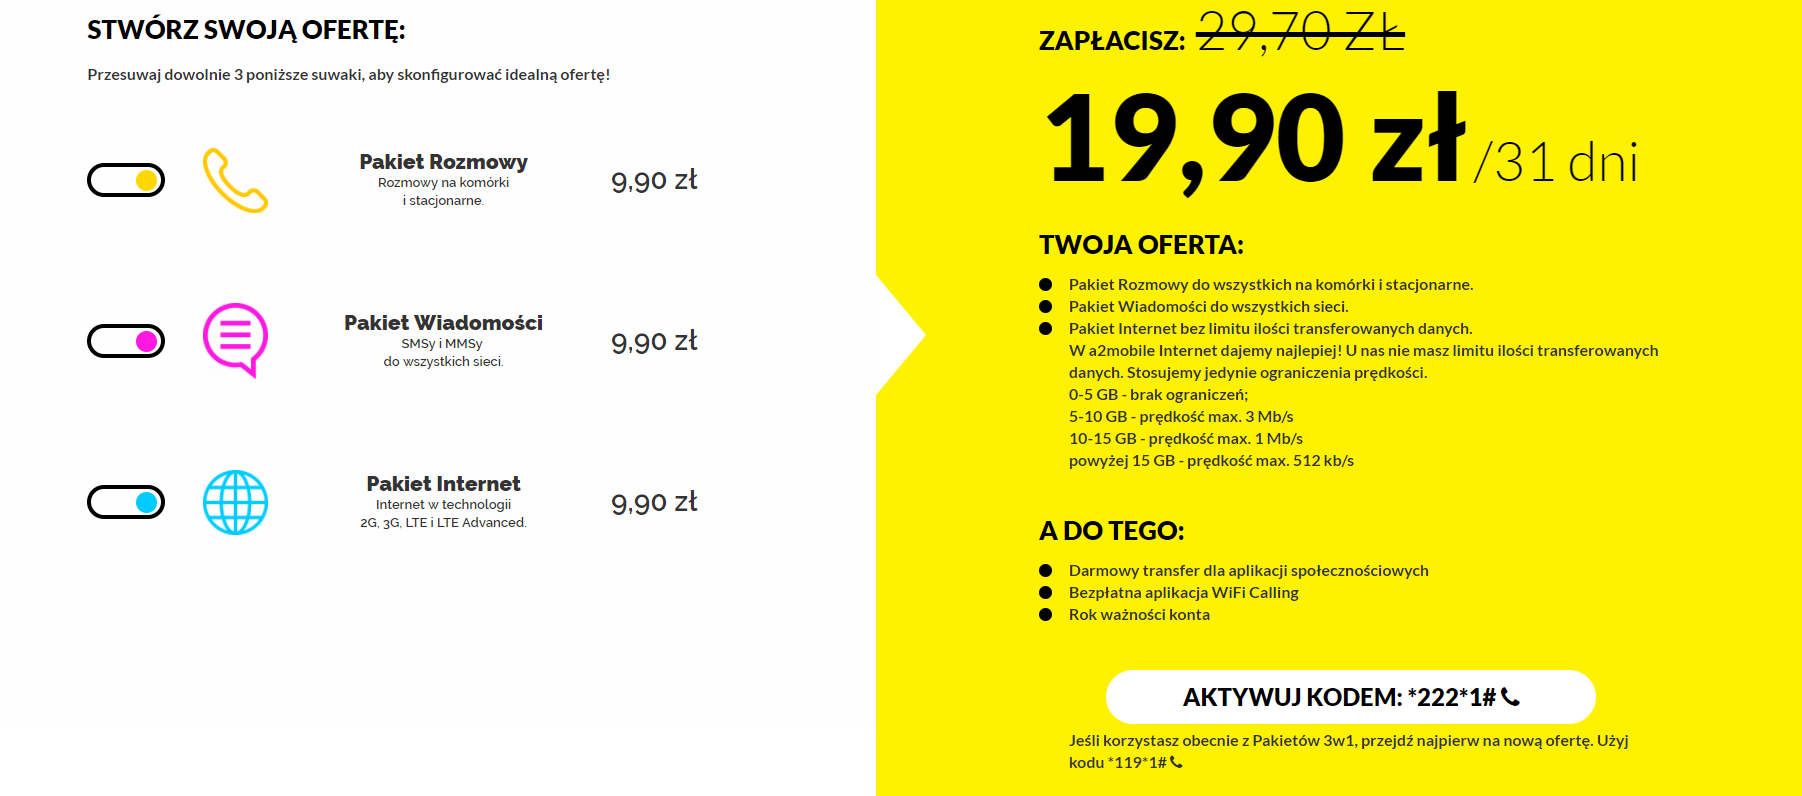 a2 mobile oferta i opinie